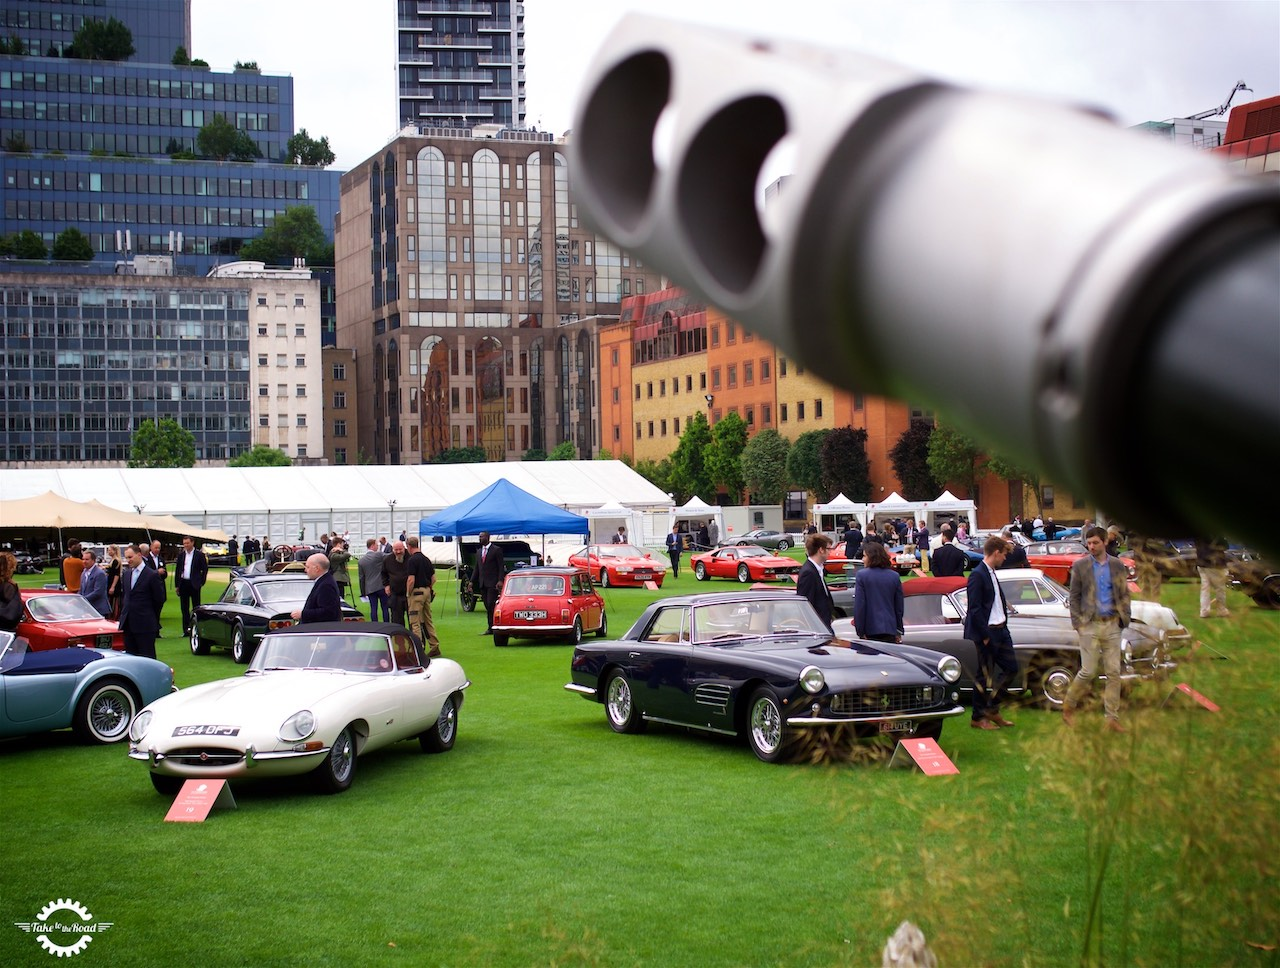 Take to the Road Highlights from the 2017 City Concours in London